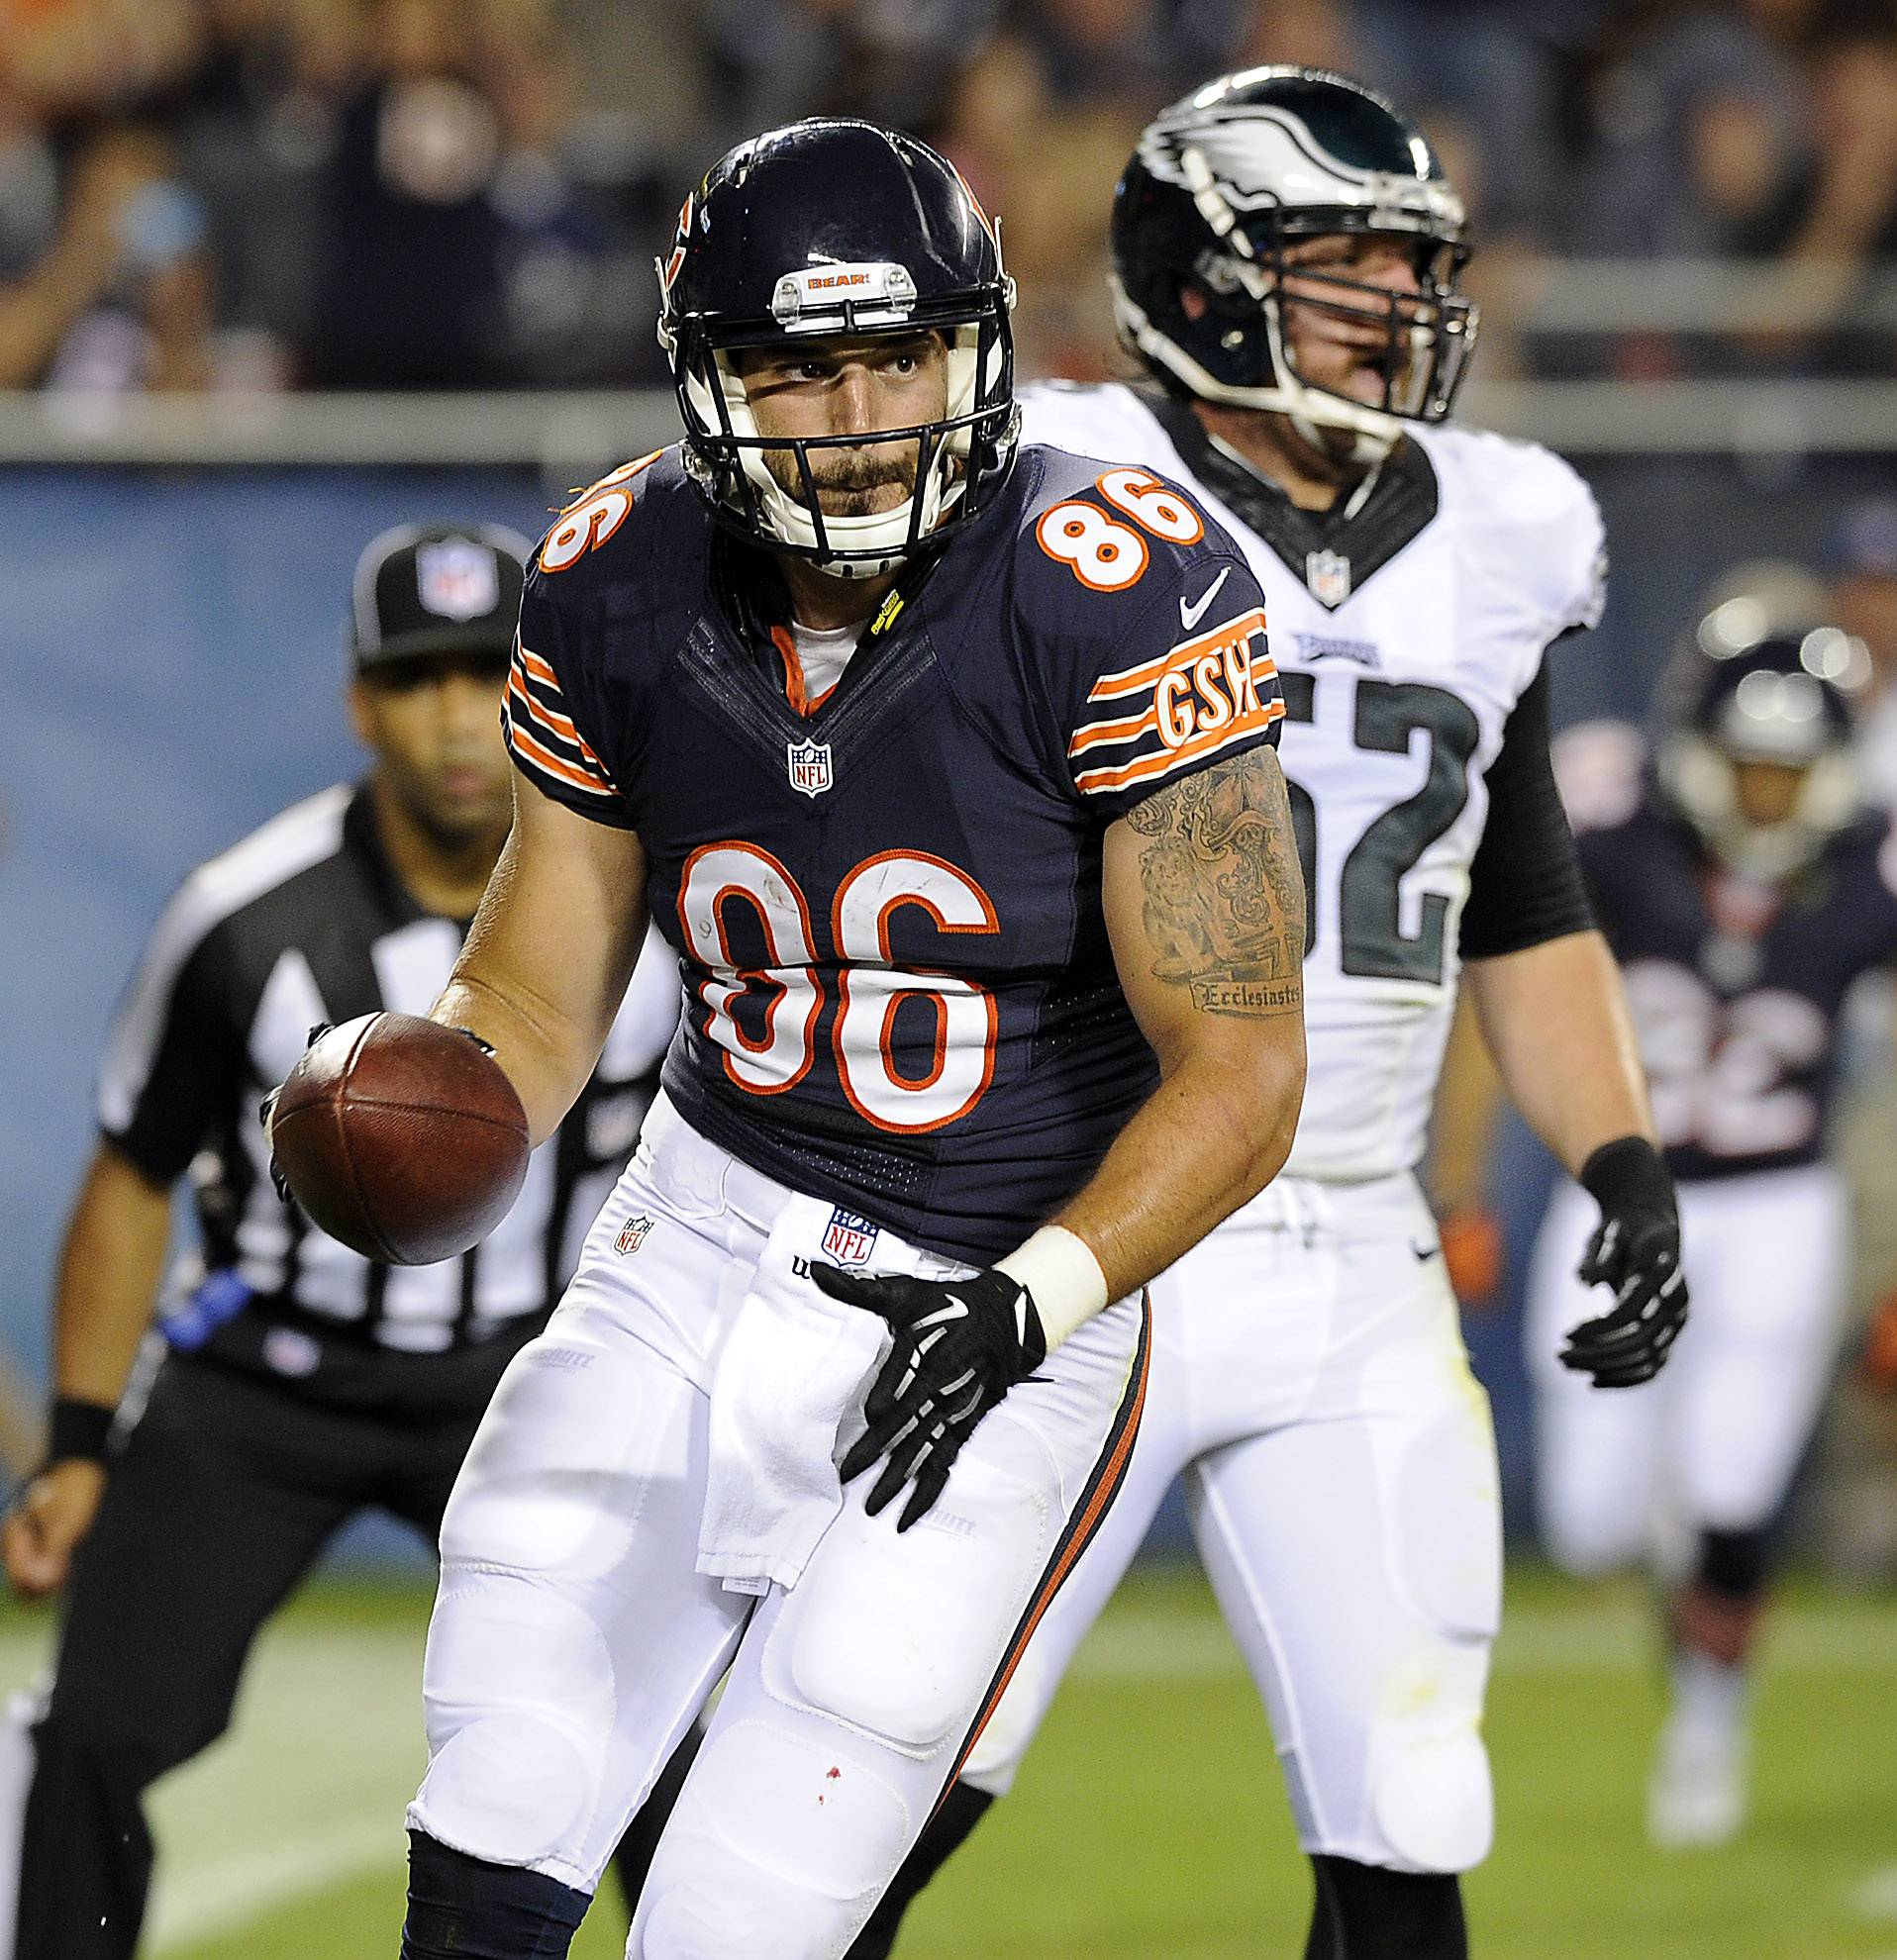 Bears tight end Zach Miller hauls in a Jordan Palmer pass for one of his 2 touchdowns in Friday's 34-28 victory in the preseason opener.